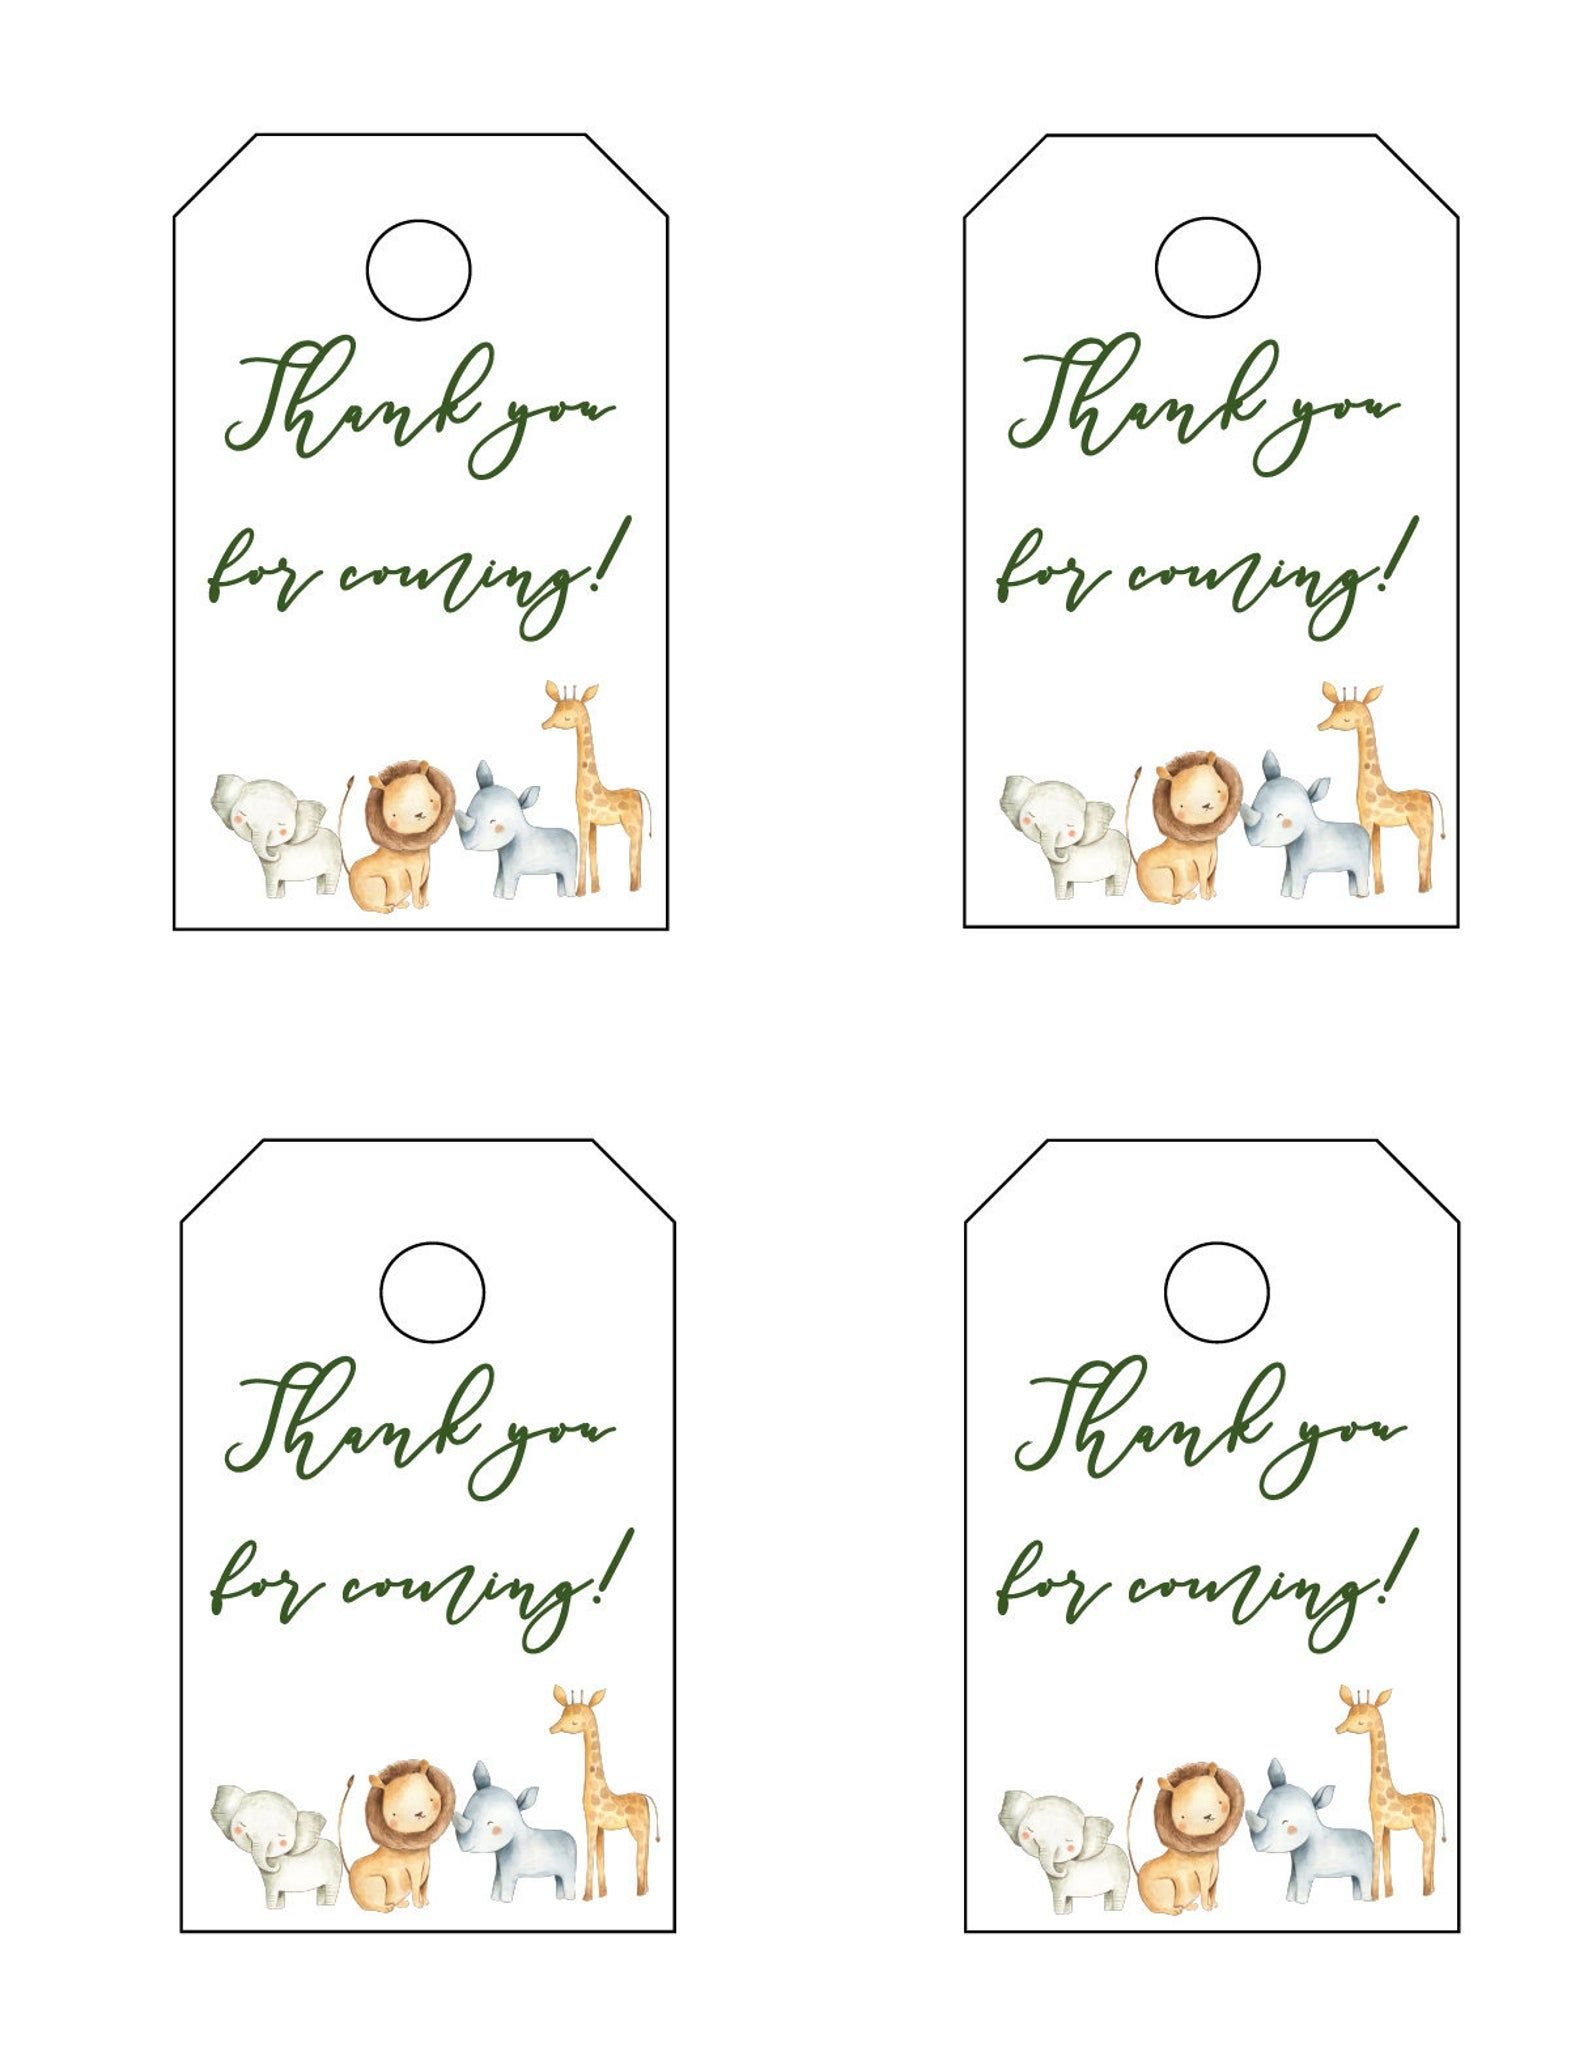 Safari Baby Shower Thank You For Coming Tags Baby Shower Favor Tags Safari Theme Favor Tags Thank You Tags Printable Tags Jungle In 2021 Baby Shower Tags Baby Shower Favor Tags Baby shower favor tags template